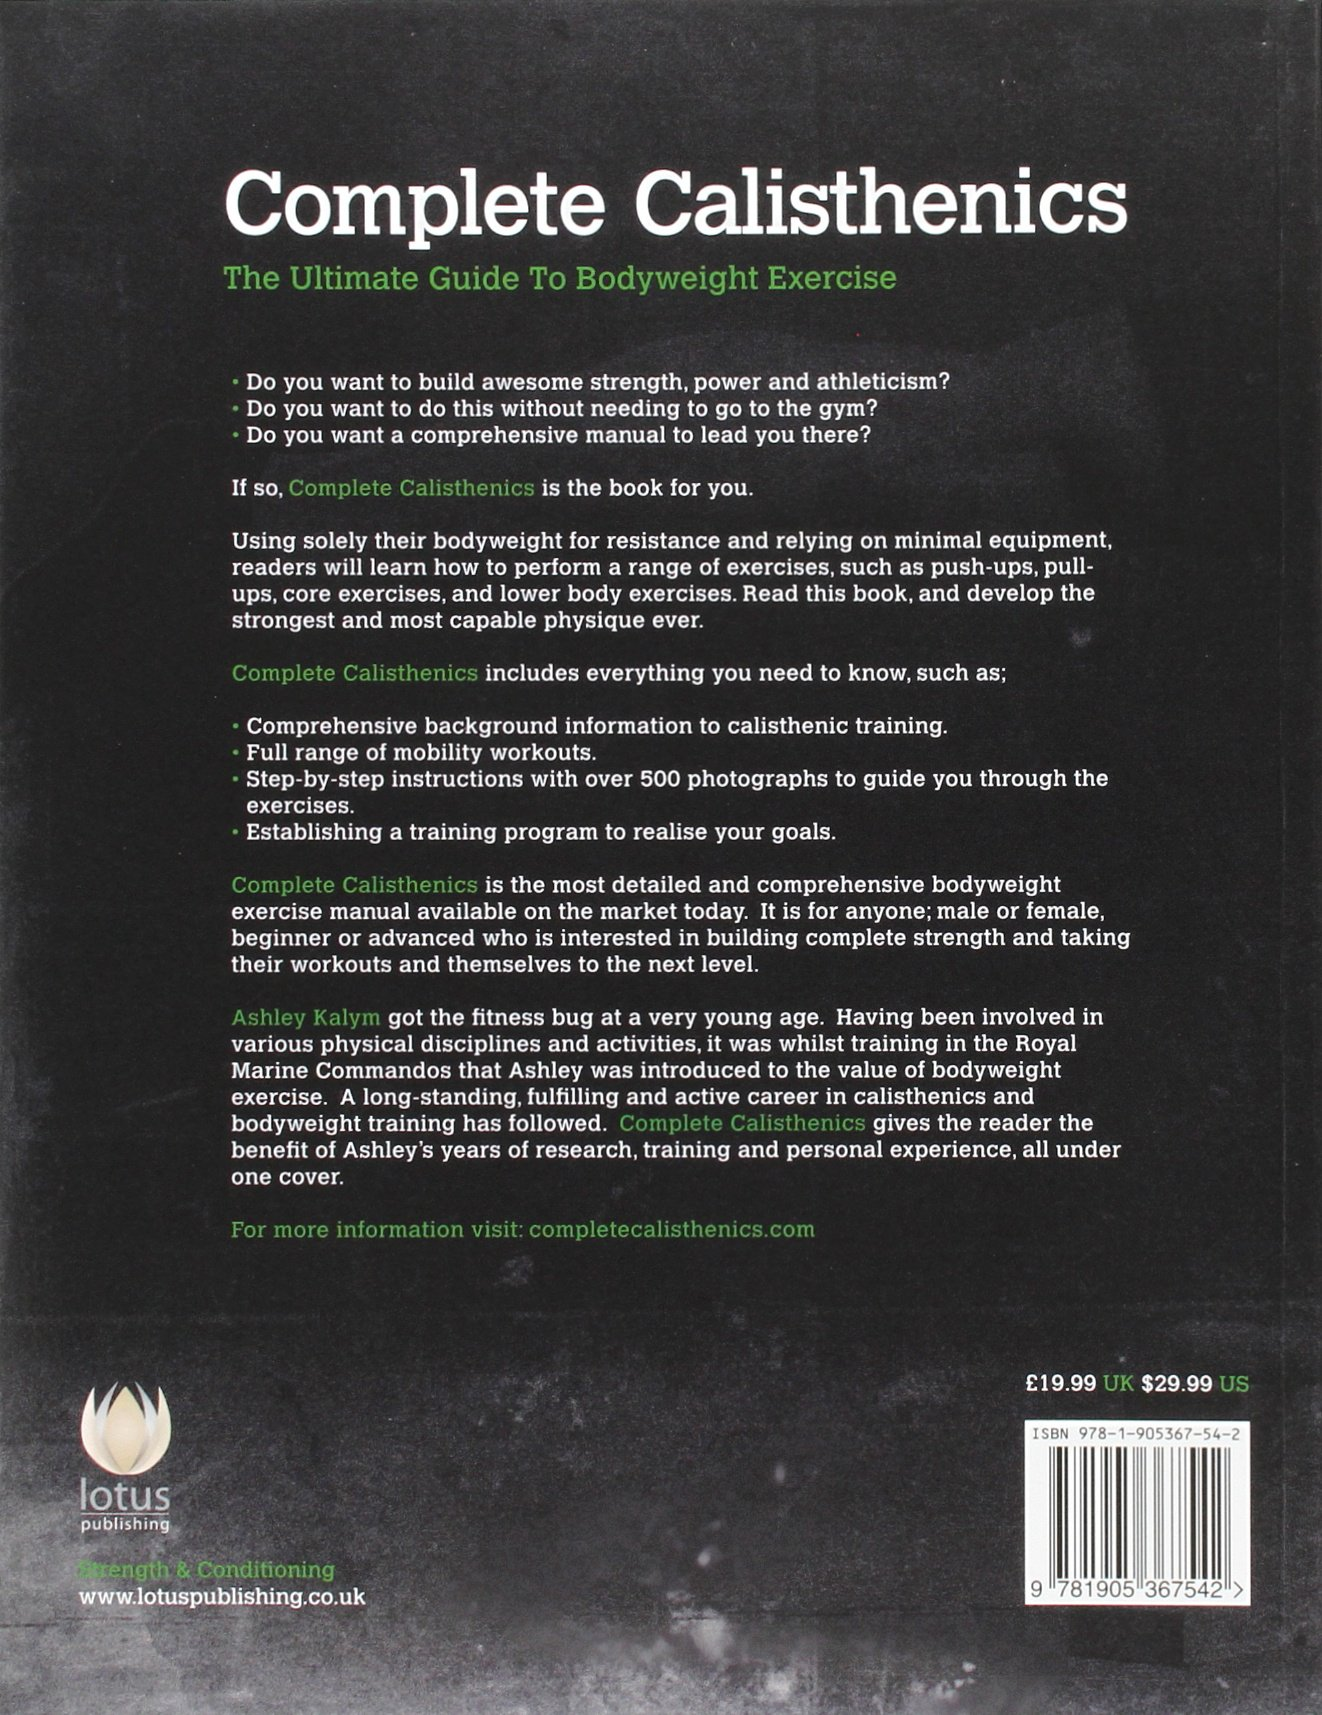 Complete calisthenics the ultimate guide to bodyweight exercise complete calisthenics the ultimate guide to bodyweight exercise amazon ashley kalym libri in altre lingue fandeluxe Image collections